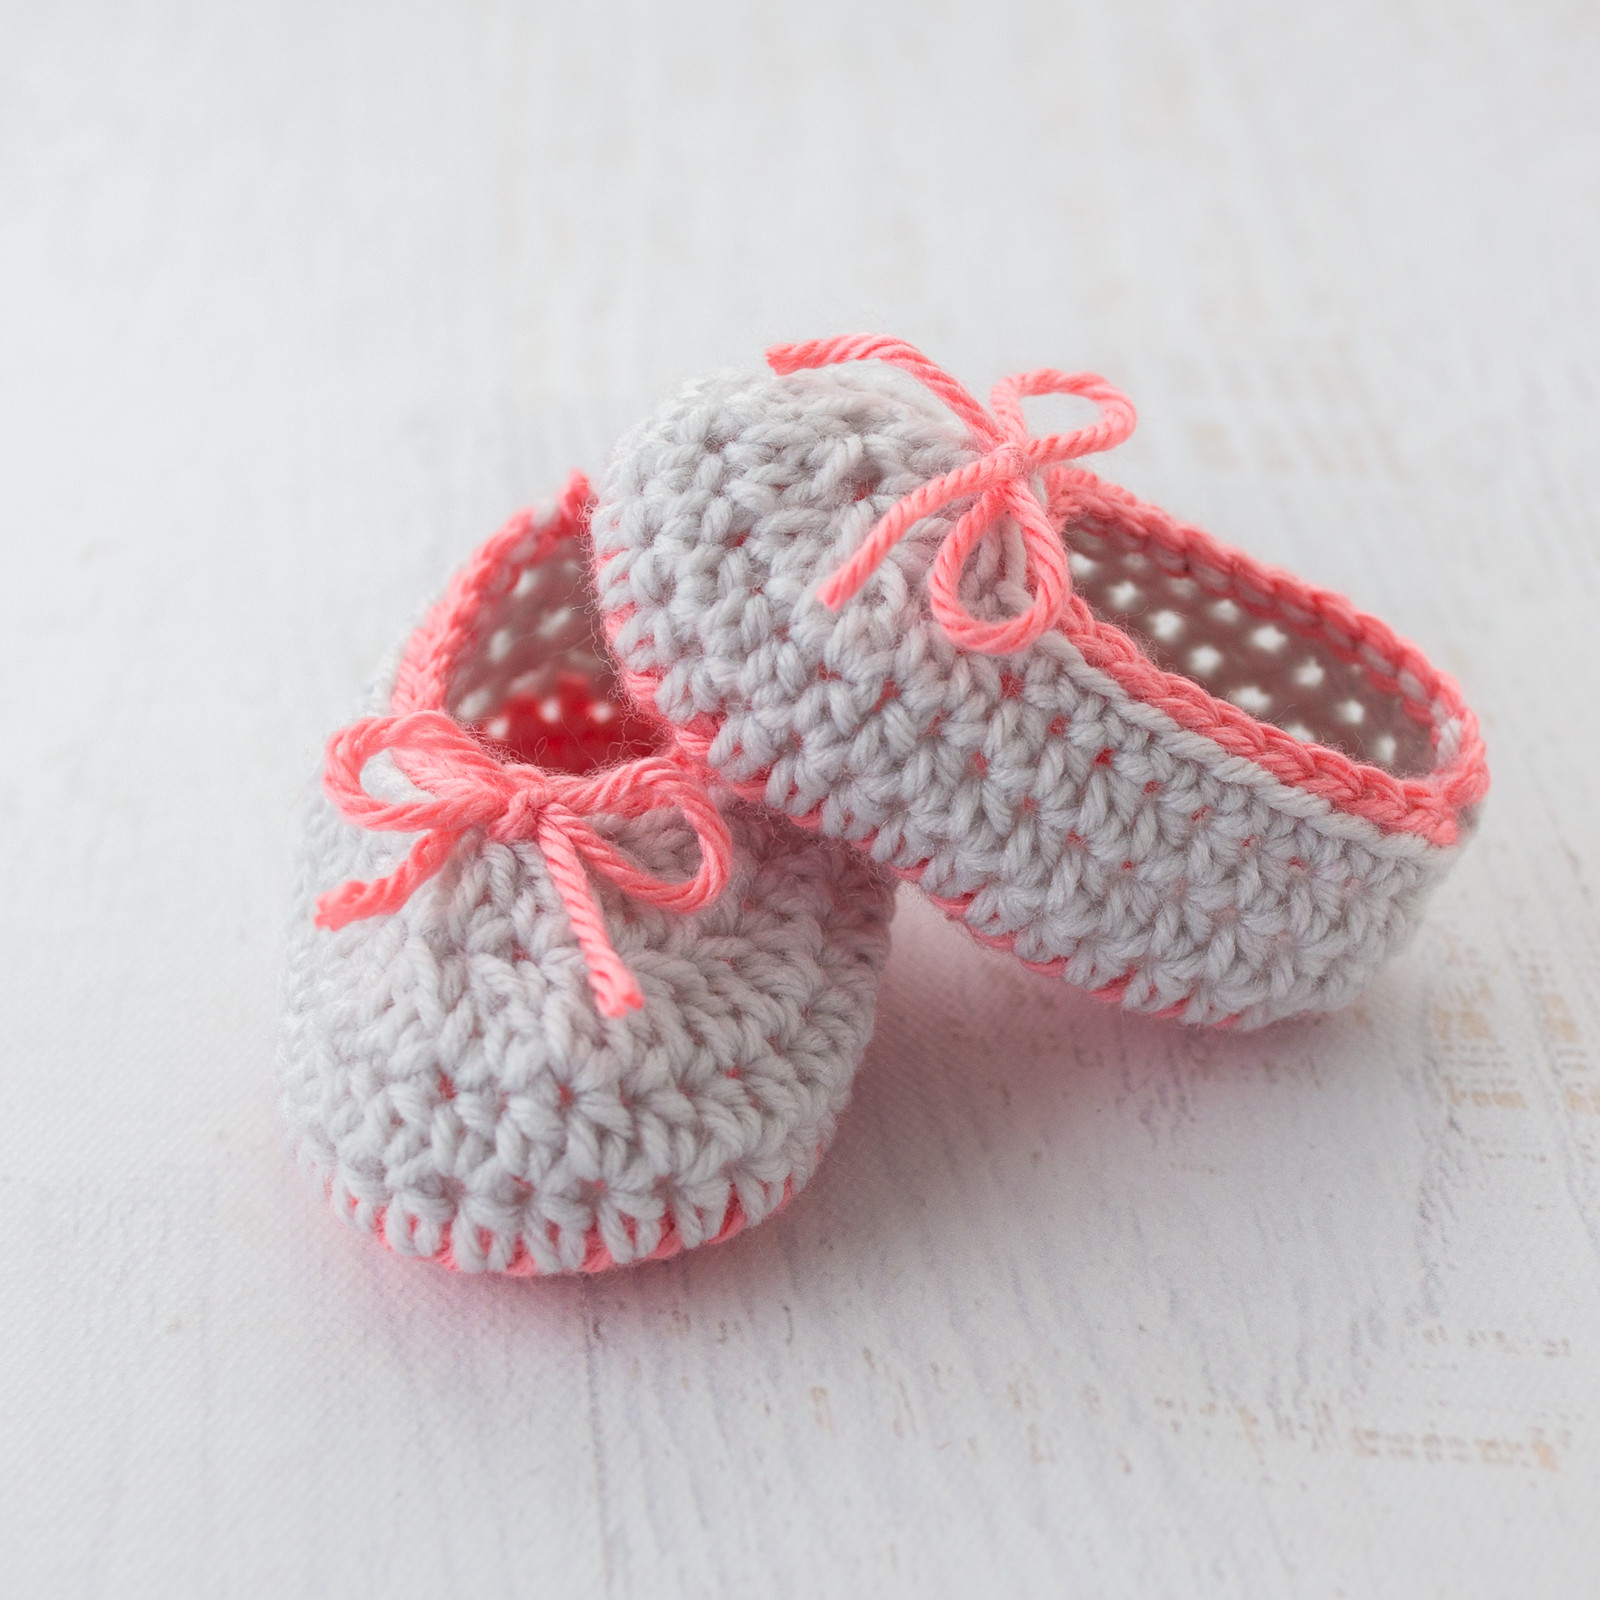 Free Crochet Baby Booties Inspirational Neon Trim Baby Slippers – Free Crochet Pattern Of Wonderful 49 Photos Free Crochet Baby Booties